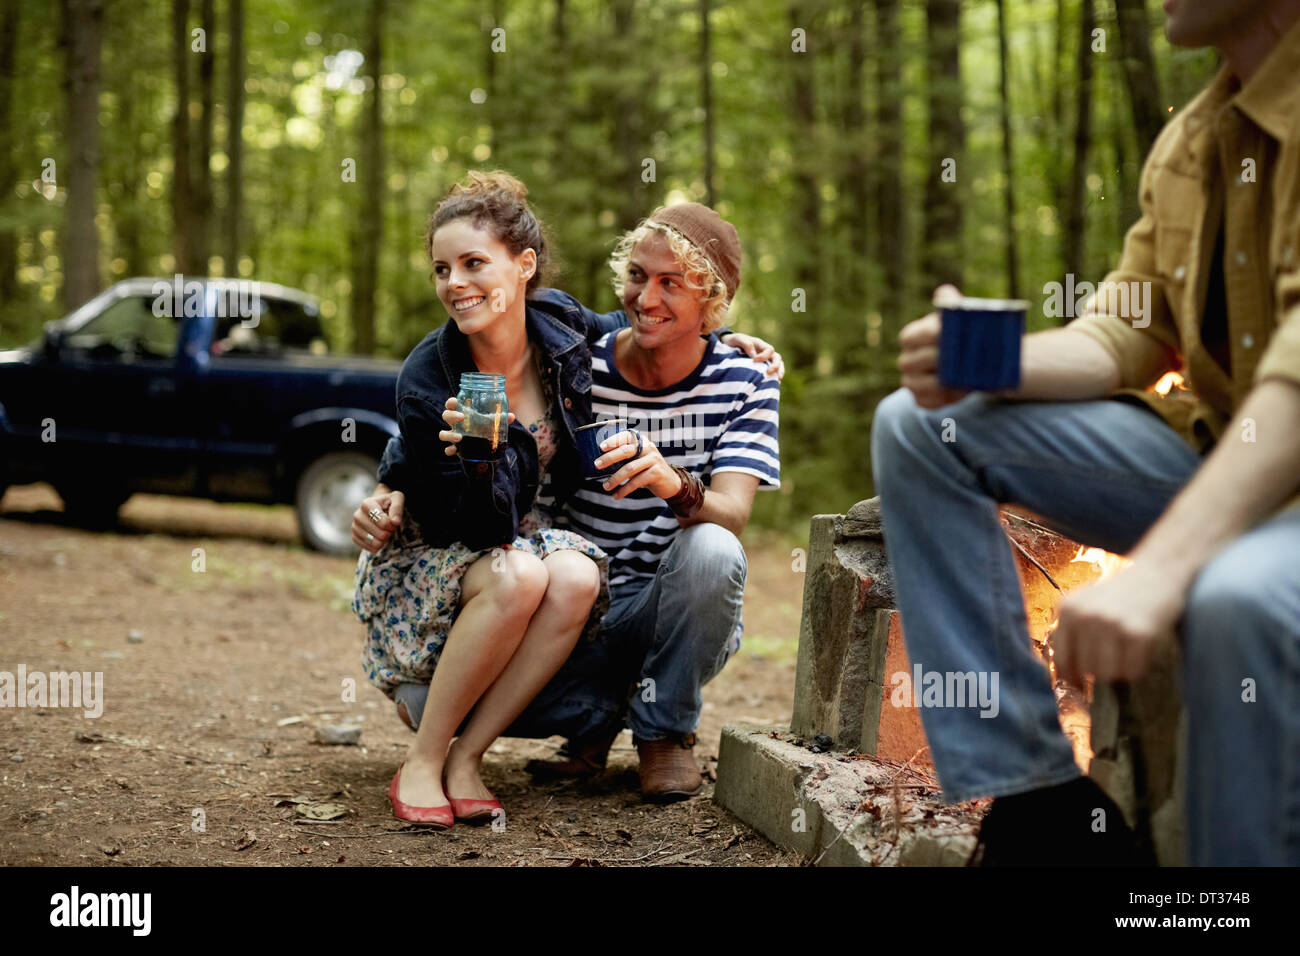 Three people sitting around a campfire at dusk - Stock Image